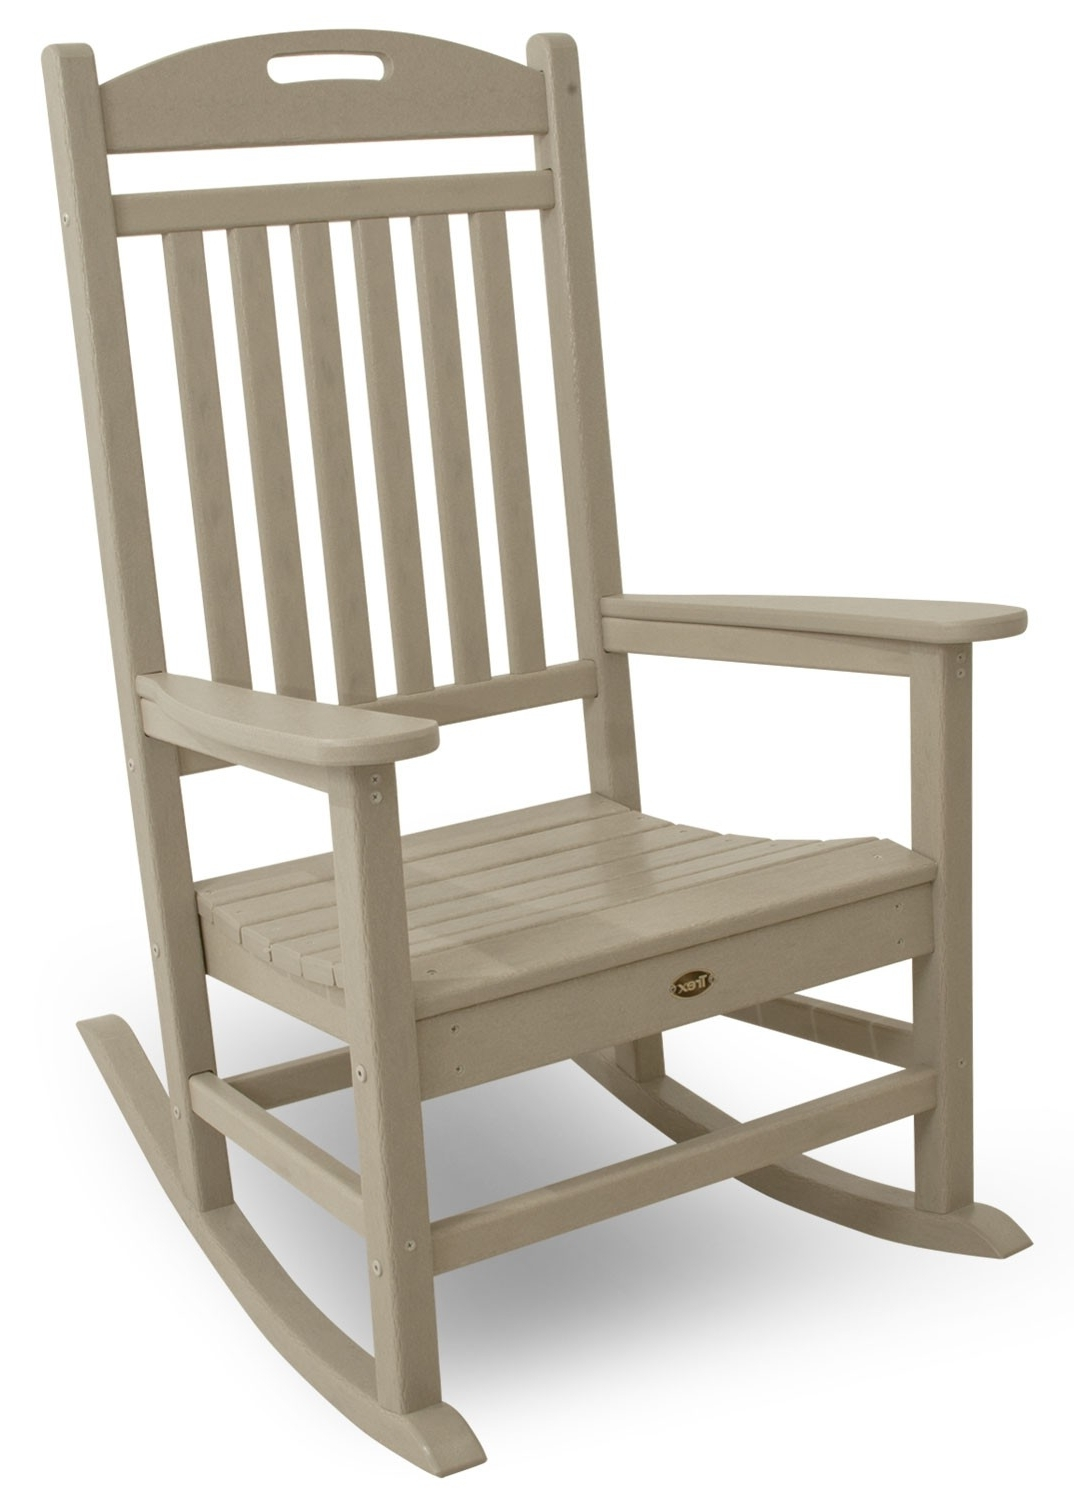 Widely Used Yacht Club Rocking Chair Regarding Patio Rocking Chairs (View 6 of 15)